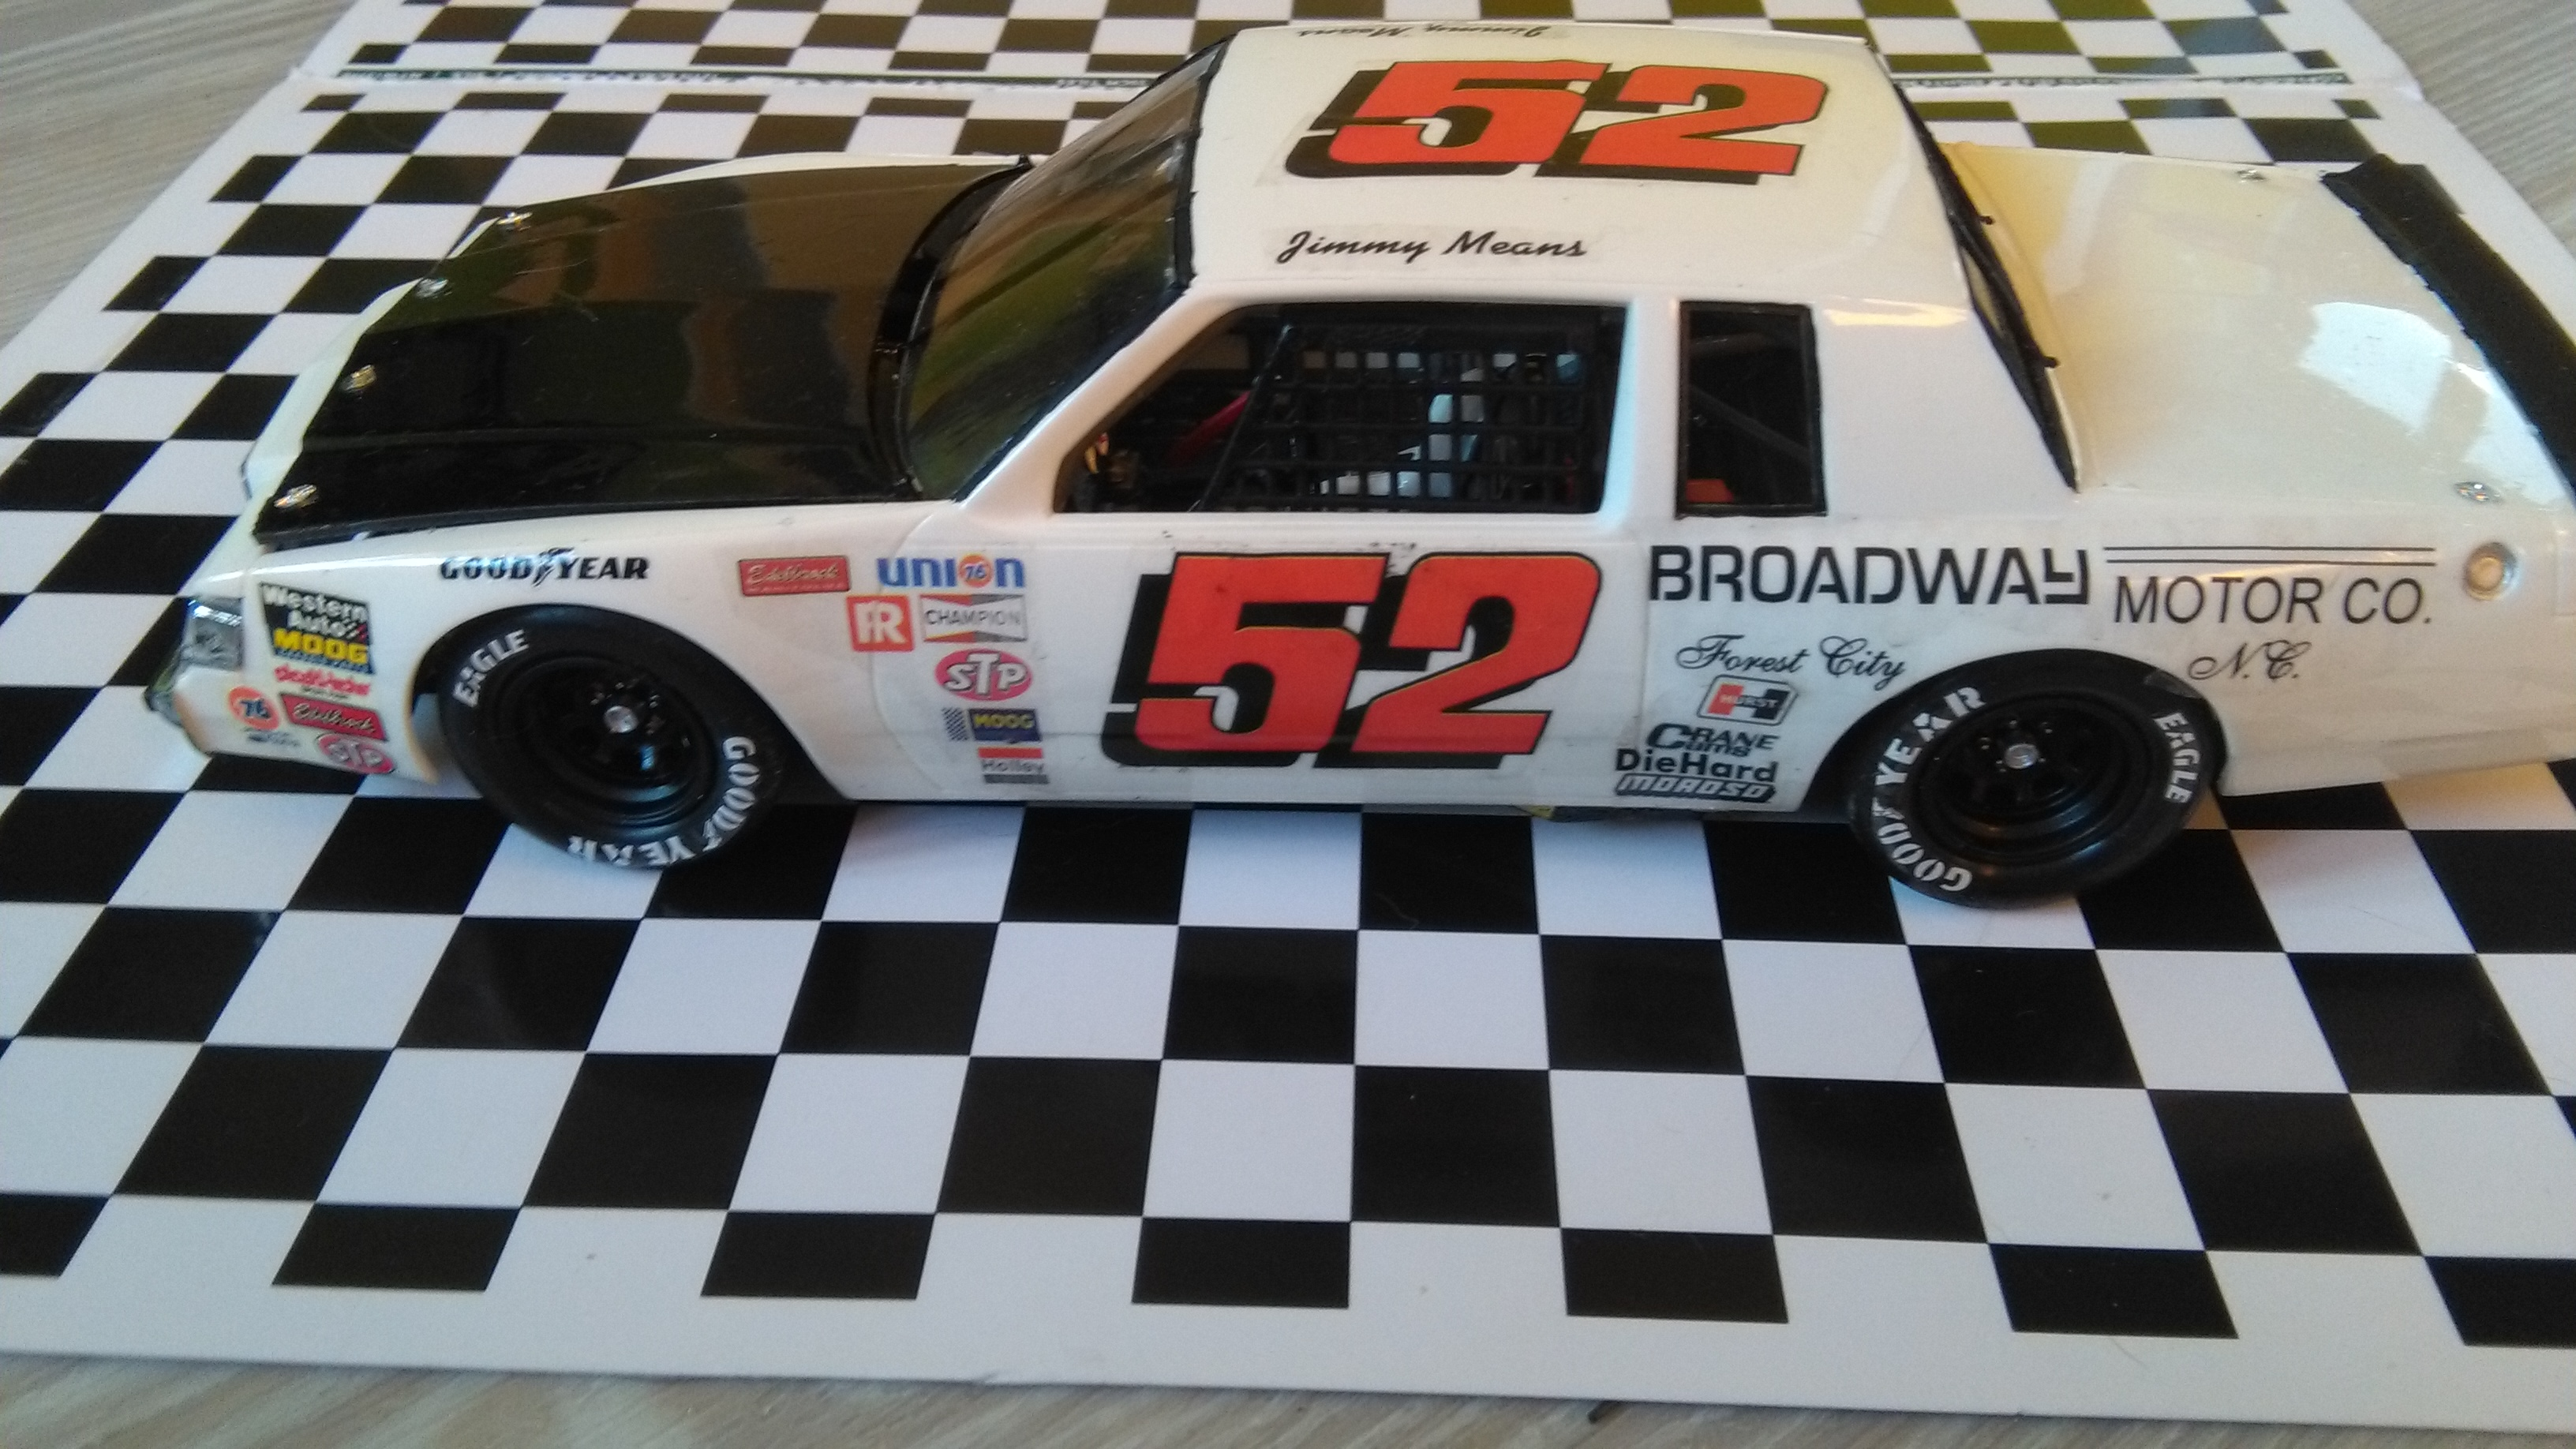 Buick Regal 1982 #52 Jimmy Means Broadway motor  846760IMG20170216083015